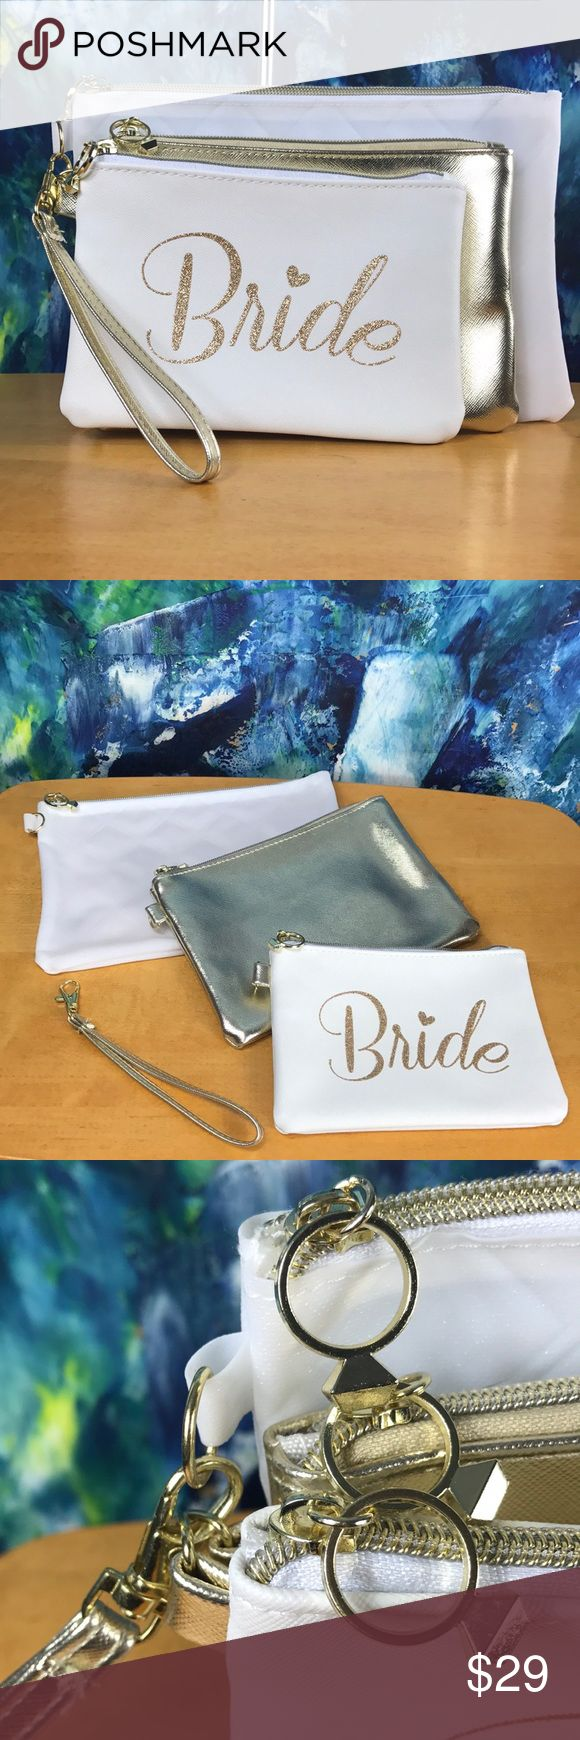 Bride 👰🏻 Cosmetic Bag Clutch Wristlet Trio Set For the Bride! This cute set would make for an excellent gift for the bride-to-be! A great place to store all of the essentials and maybe a few 'emergency' items for the big day! ✨Pre-Pack with the bride's favorite beauty items and give it to her at her bridal shower, bachelorette party or rehearsal dinner! Great Accessory for the Honeymoon! 🦋Adorable 'Diamond Ring' Zipper Pull Detail 🦋Small Bag has 3 Interior Credit Card Slots  🦋Wristlet…